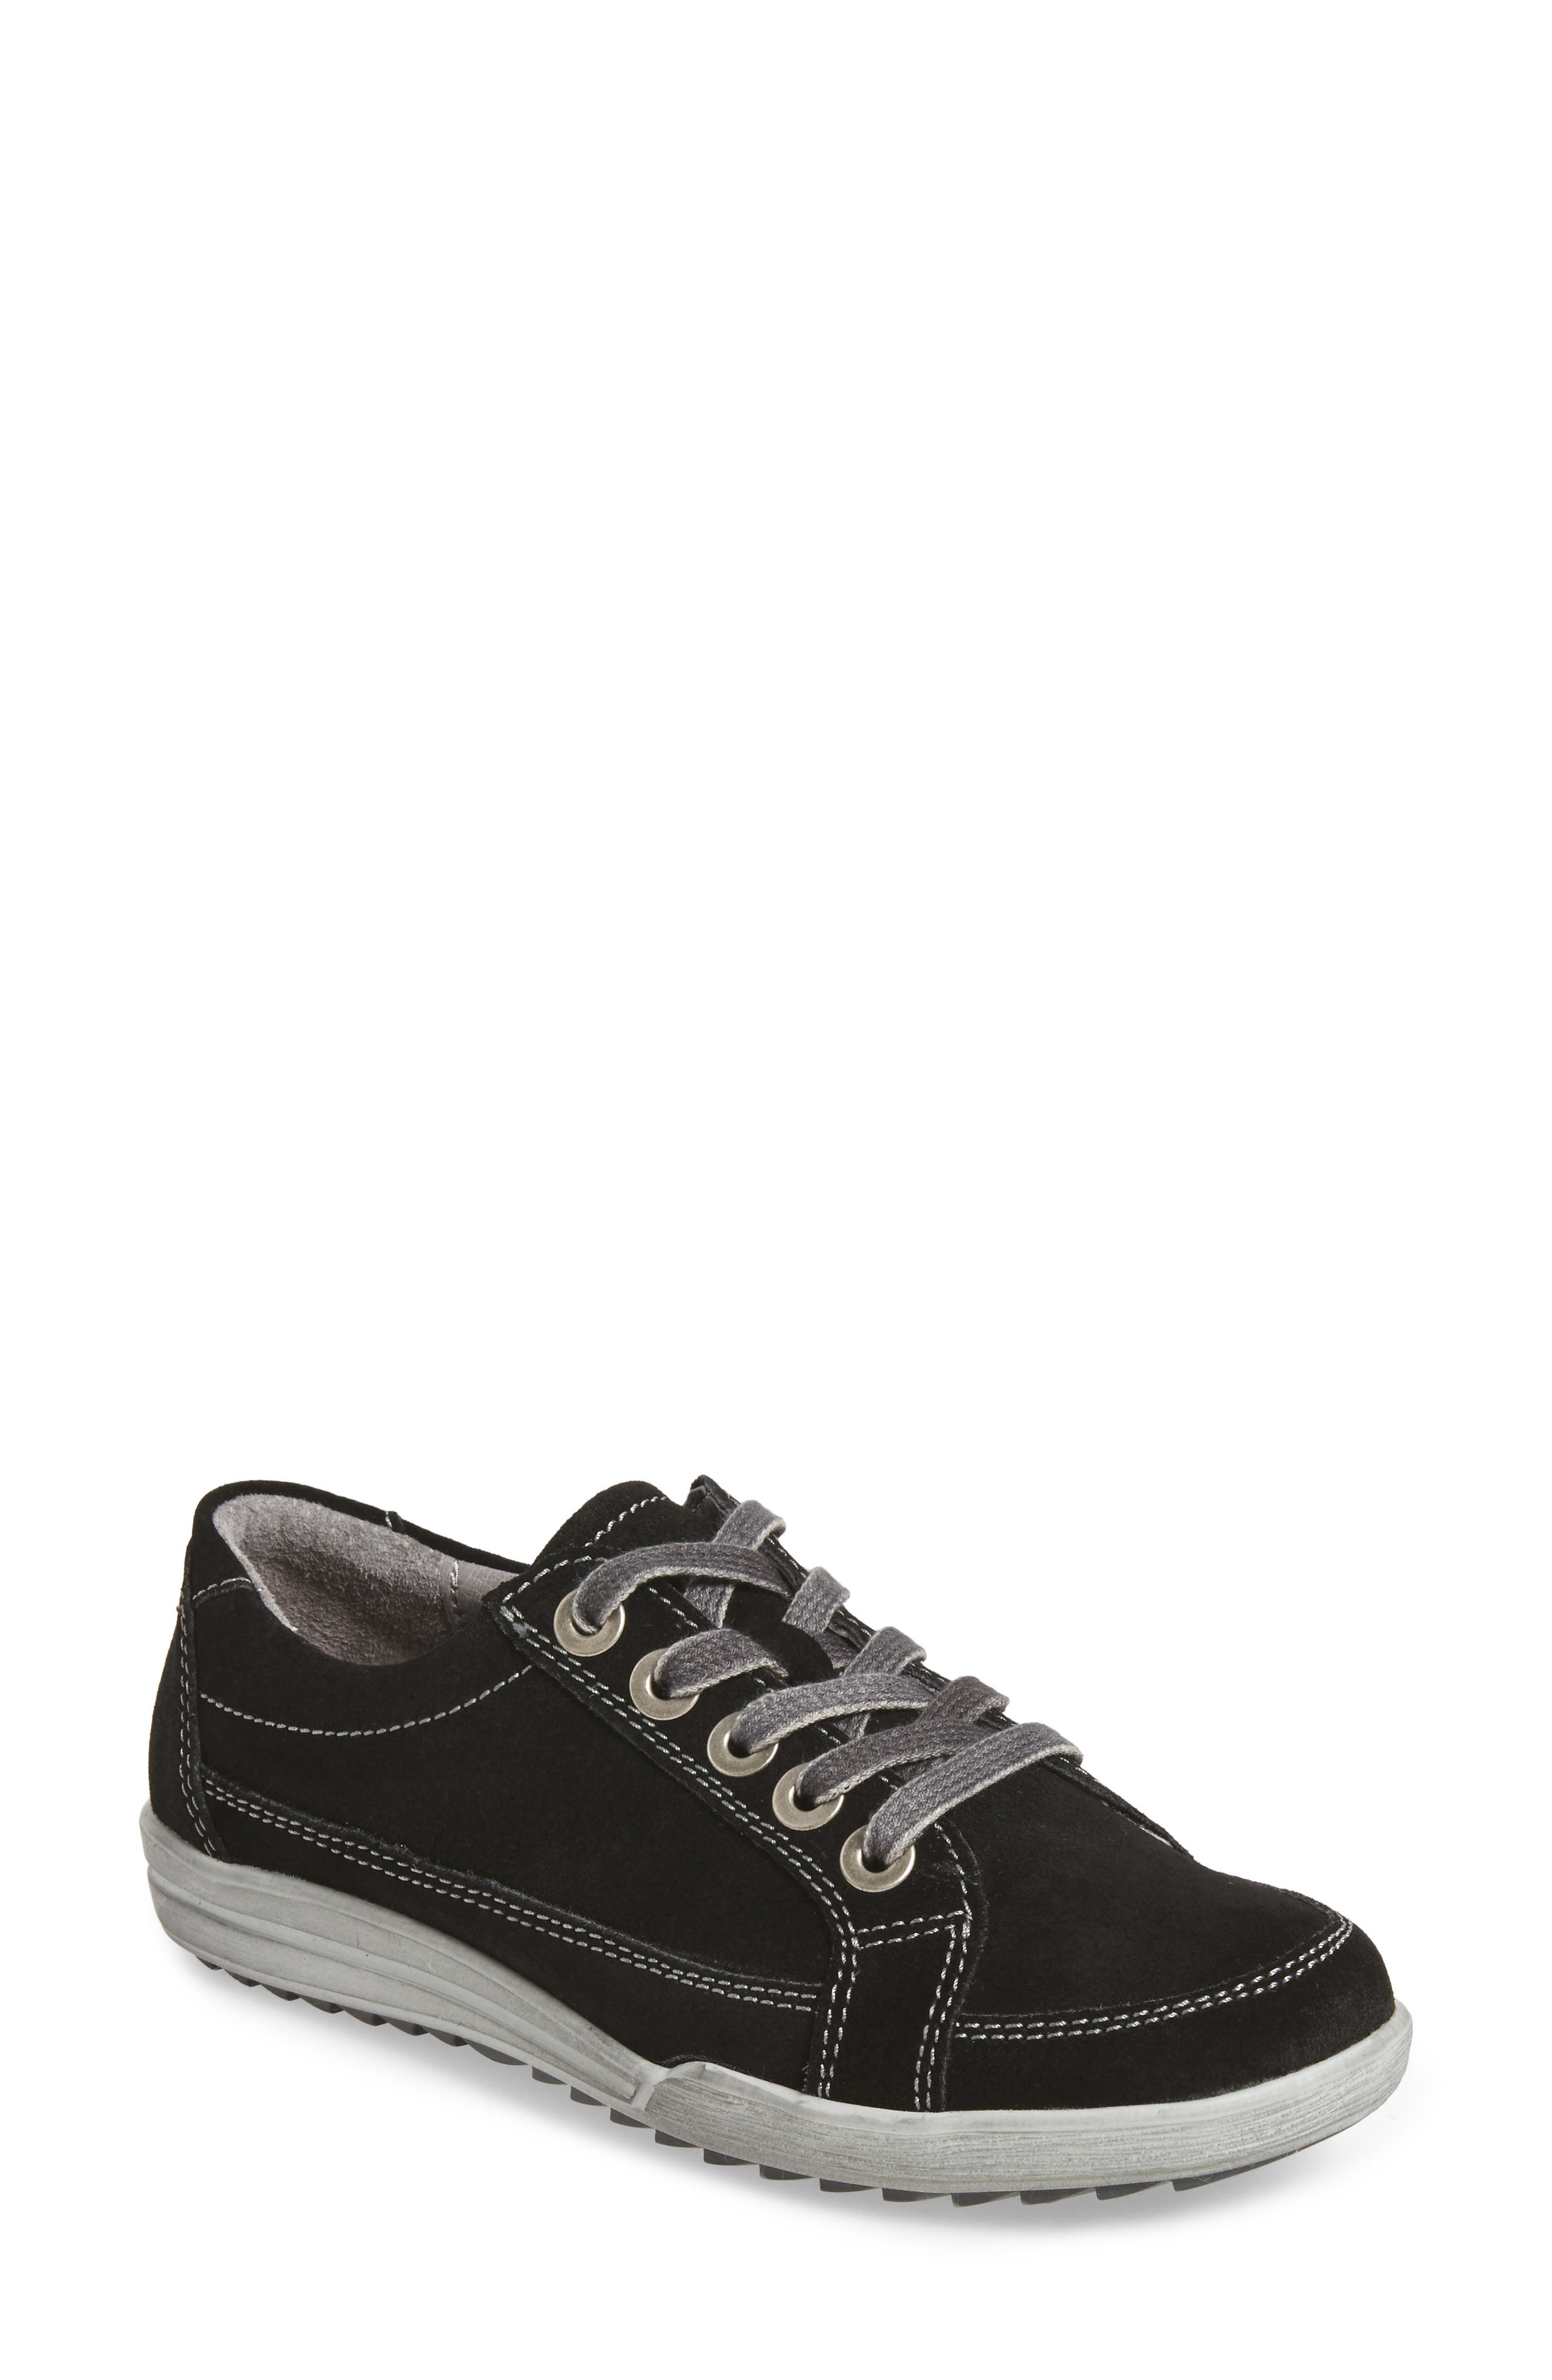 Dany 57 Sneaker,                         Main,                         color, Black Leather